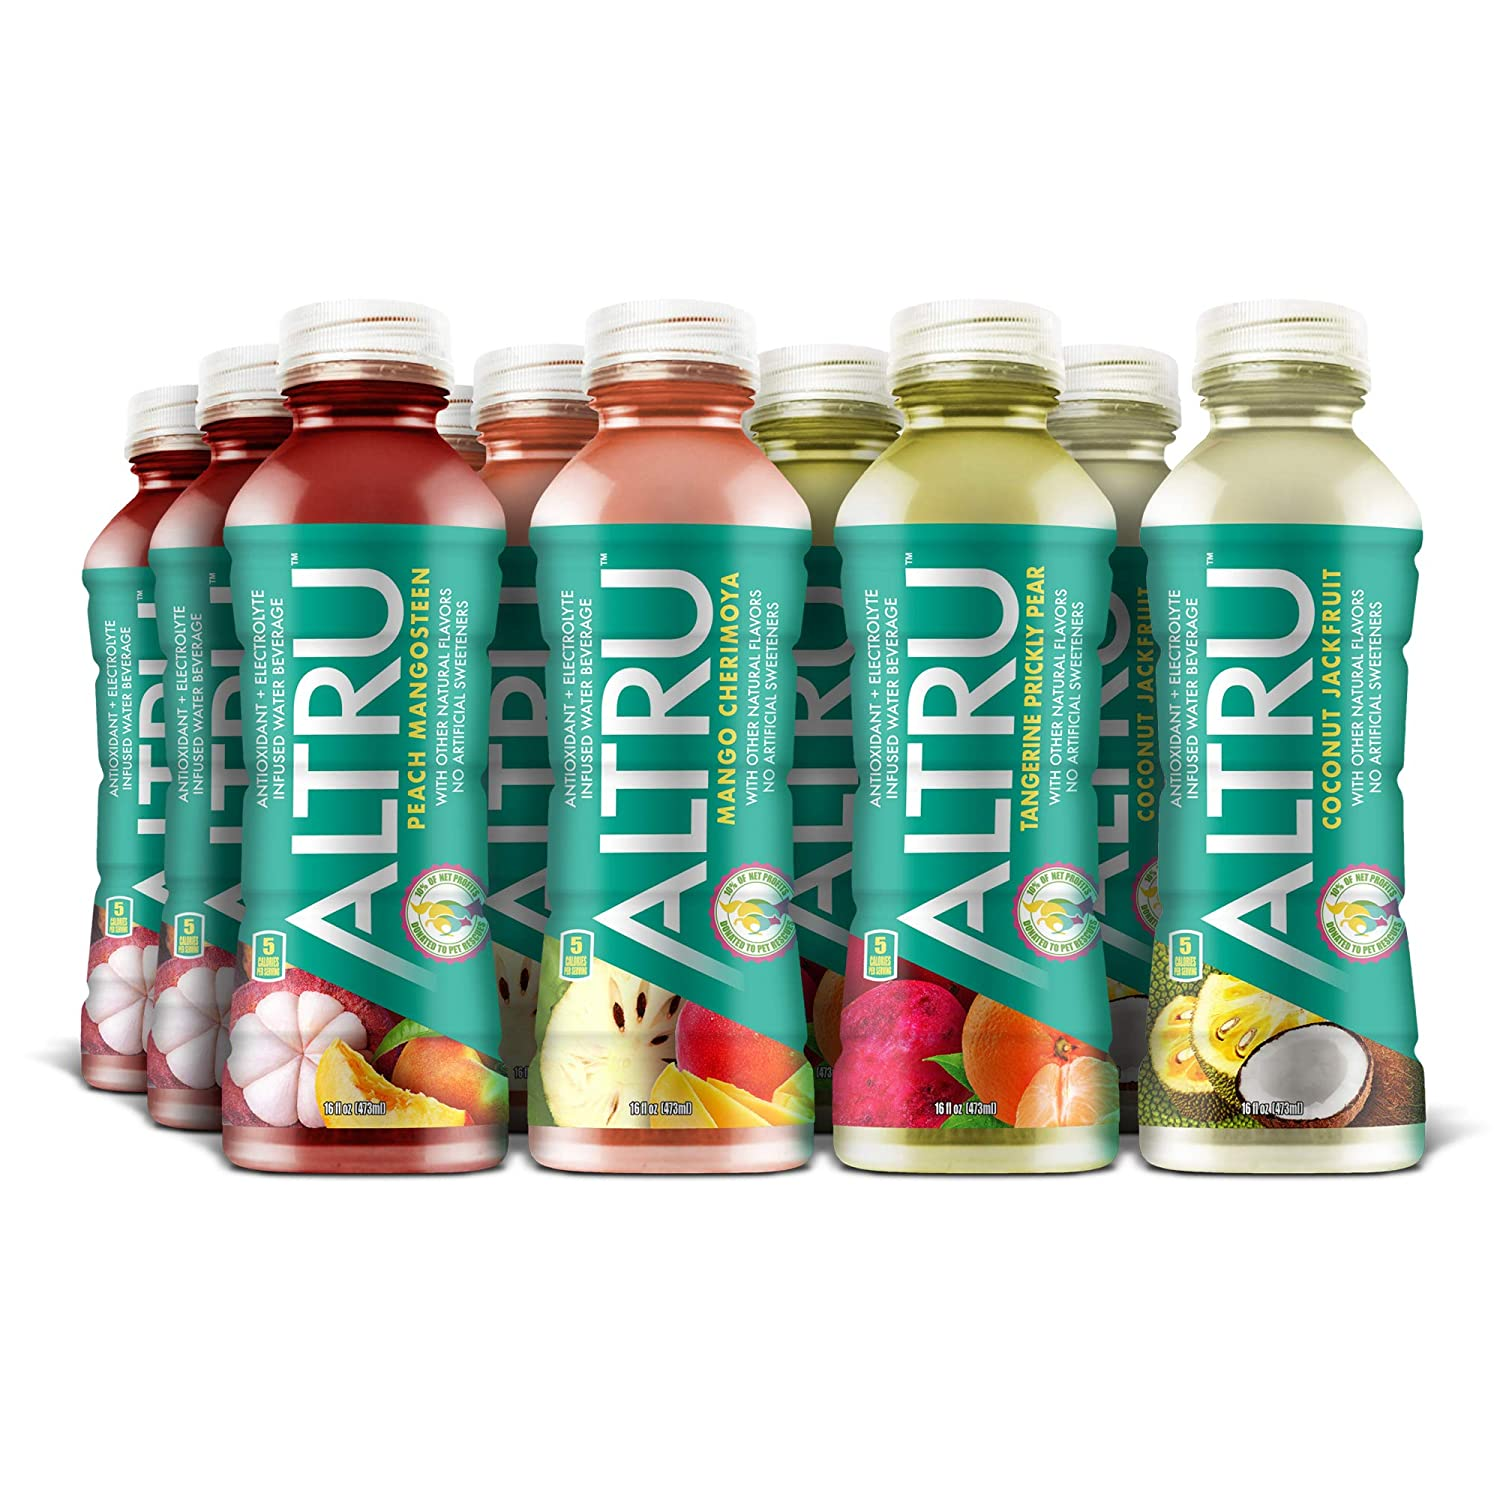 ALTRU - Exotic Fruit Flavored Water with Patent Pending Antioxidant & Electrolyte Blend - 12 pack (16 ounce bottles) KETO, Low Sugar (Variety Pack)